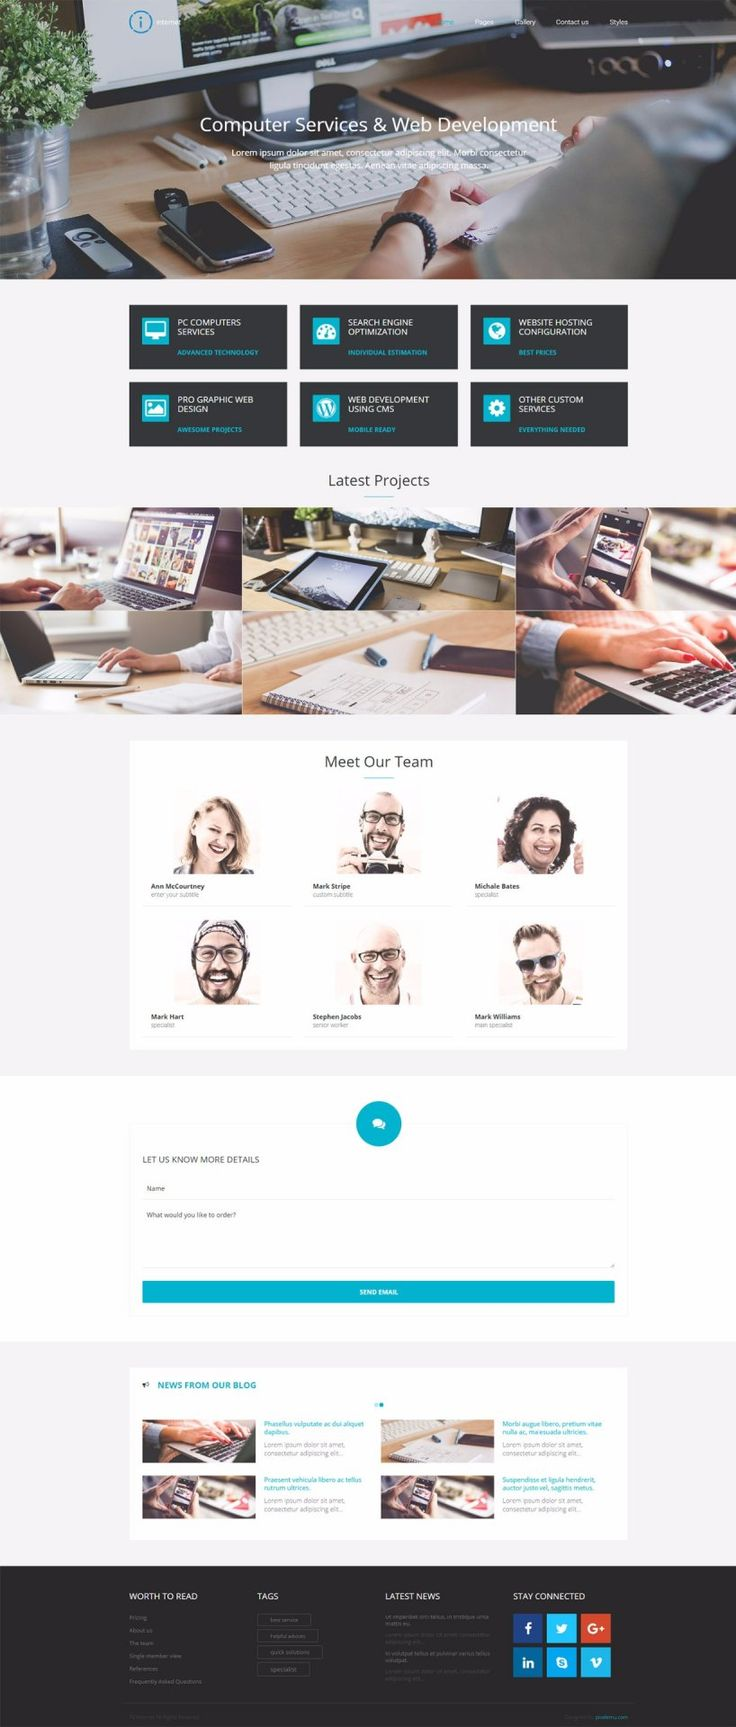 PE Internet - simple business WordPress theme perfect for companies that offer specific computer services for customers.  #business #WordPress #computer #theme #services https://www.pixelemu.com/wordpress-themes/i/14-internet